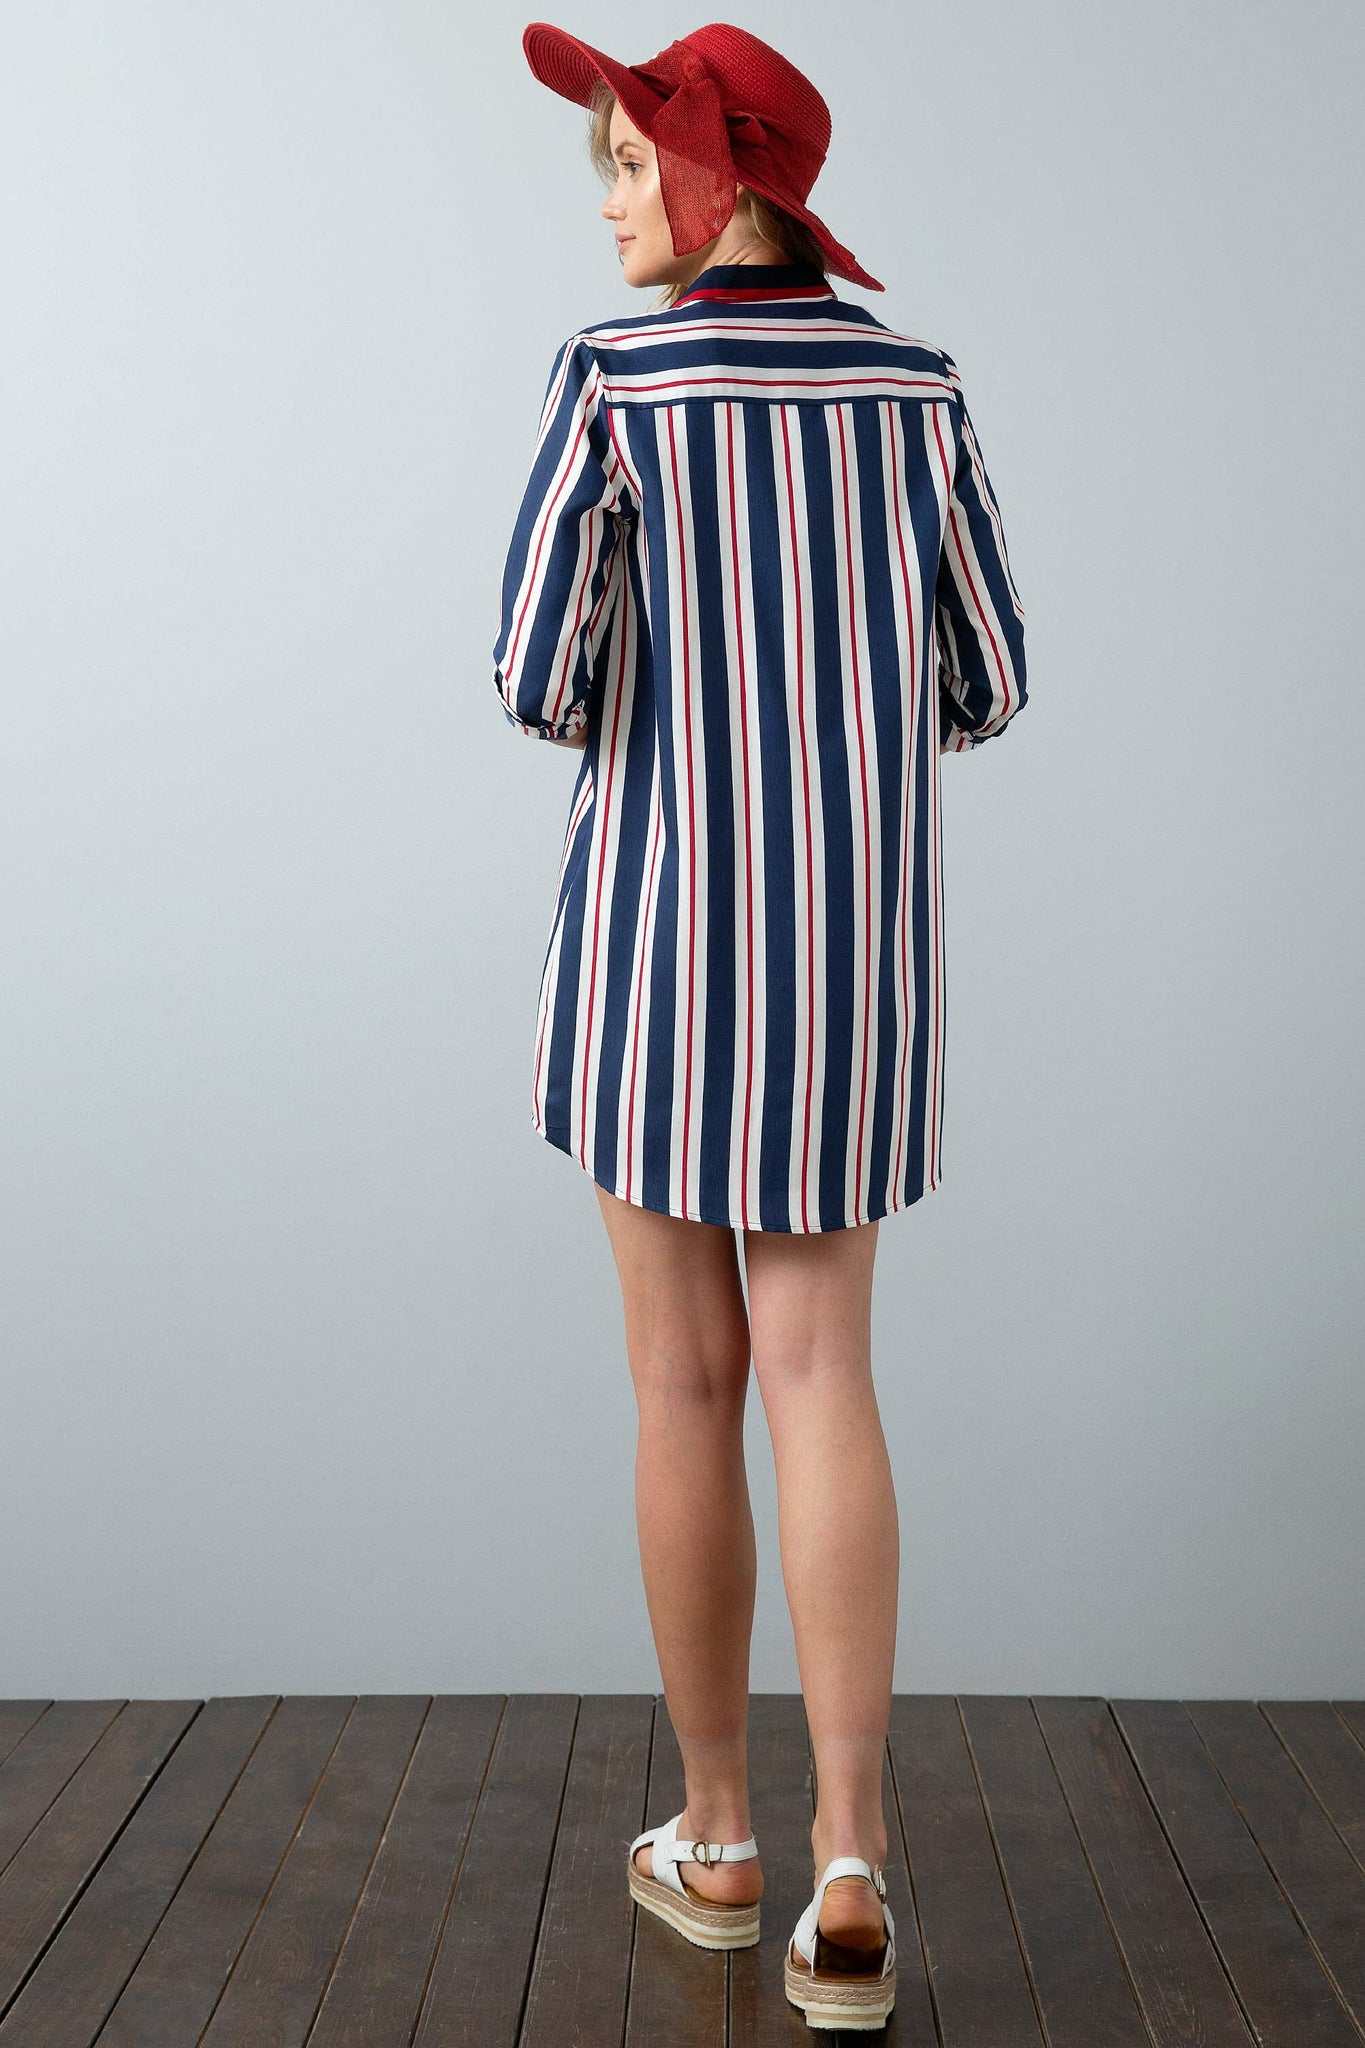 promo code 486a4 99344 7614811 Navy US POLO ASSN Dress | Poised Fashion